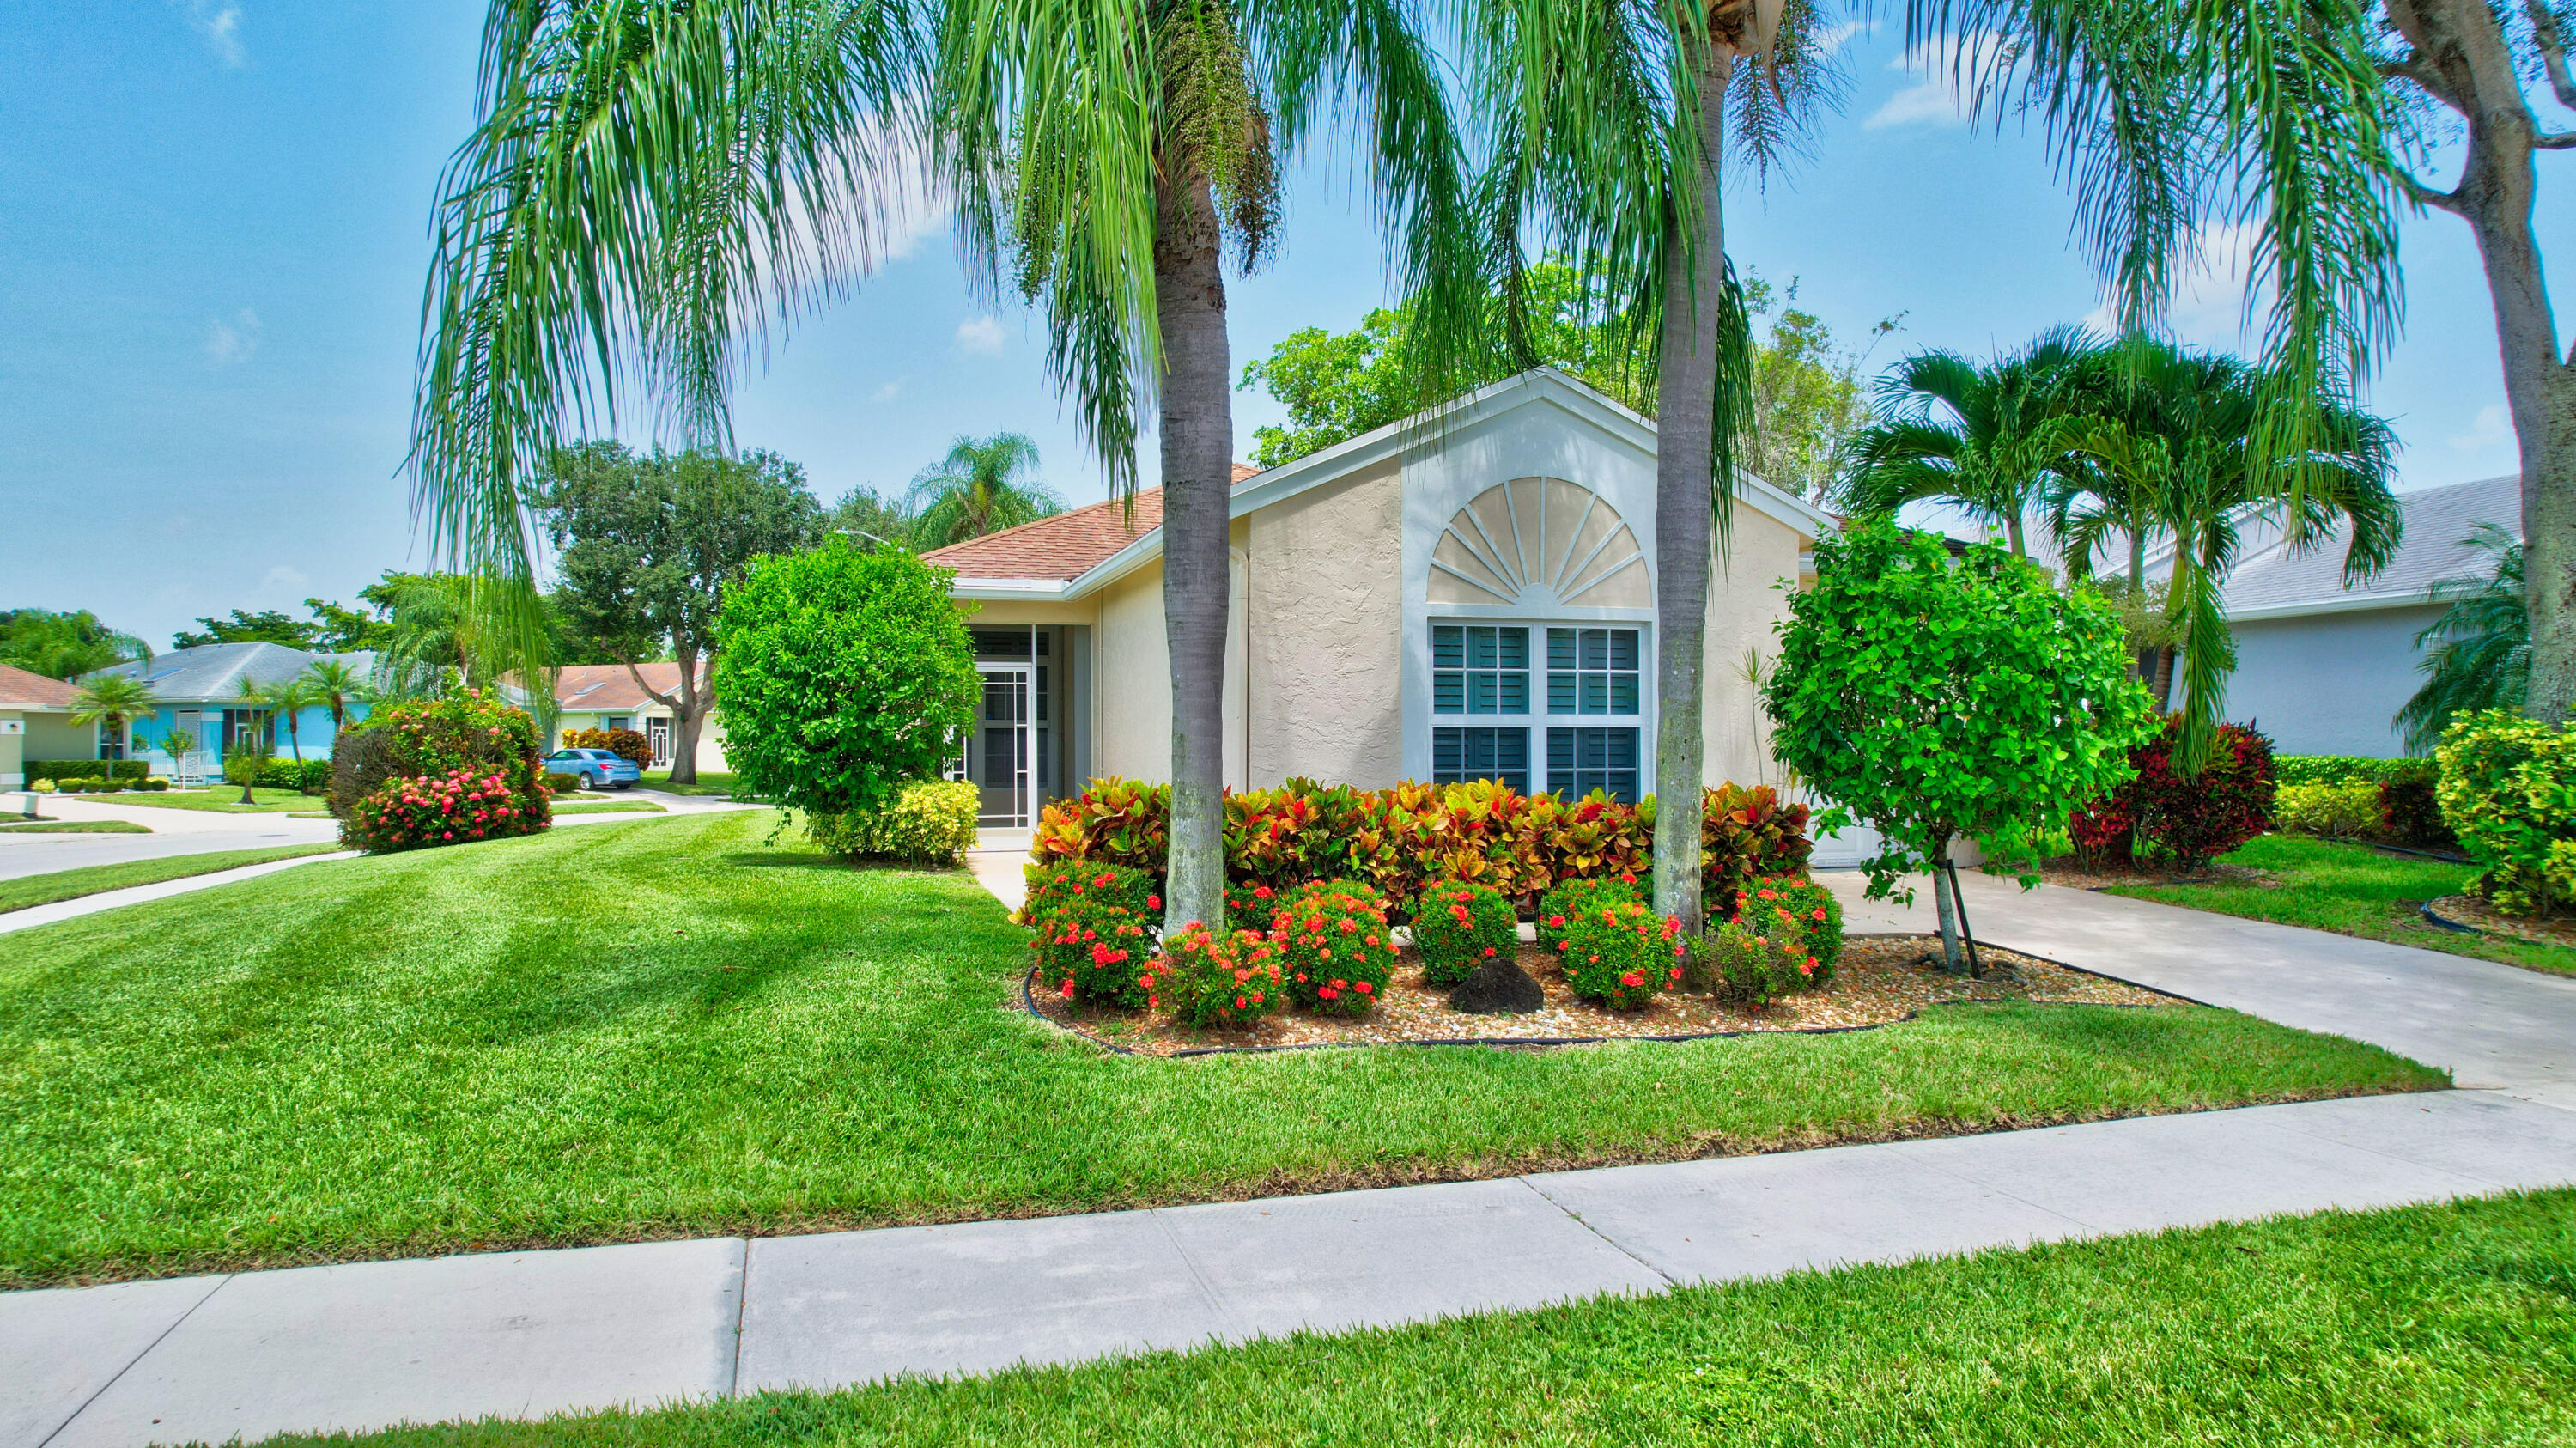 7629  Mansfield Hollow Road  For Sale 10743426, FL